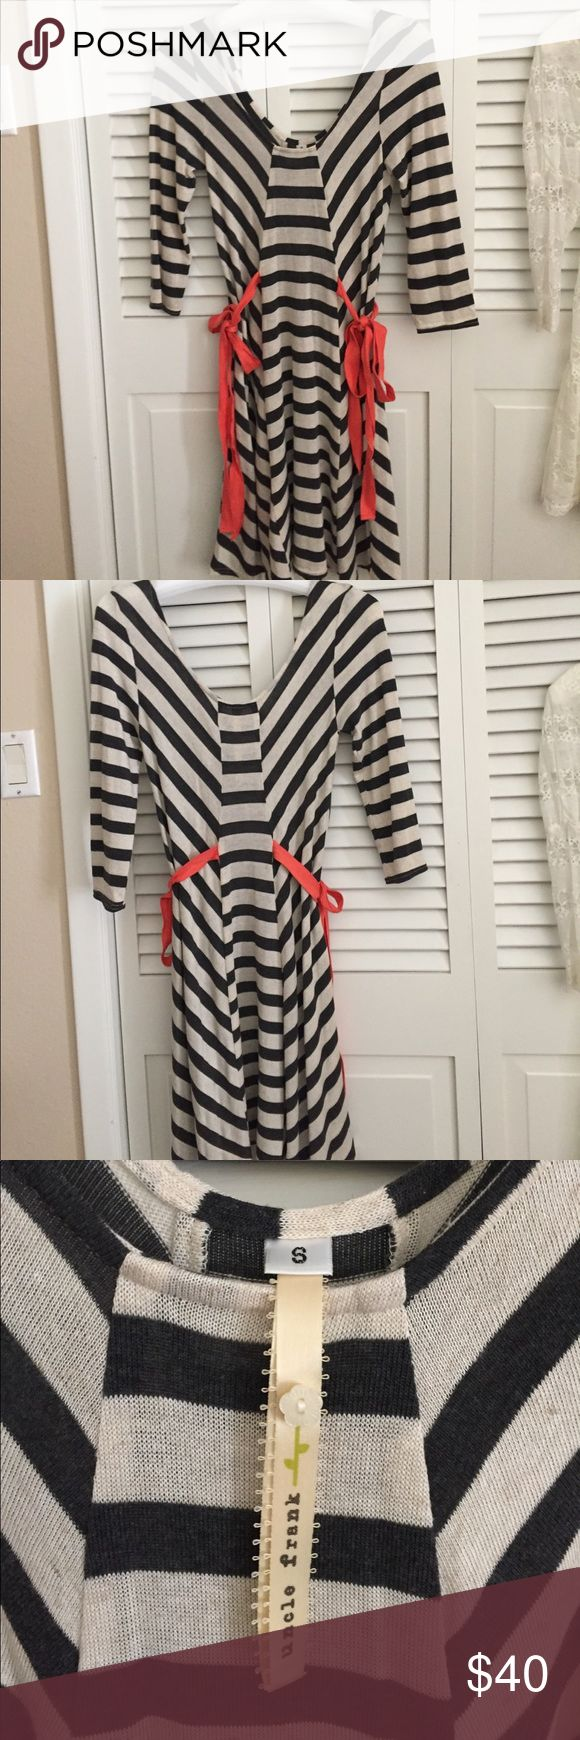 Ladies dress This an uncle frank striped dress with orange cotton ties on each side. I wore it with a cream t shirt underneath. It is polyester, rayon, linen, and spandex. It is in new condition. Three quarter sleeves. uncle frank Dresses